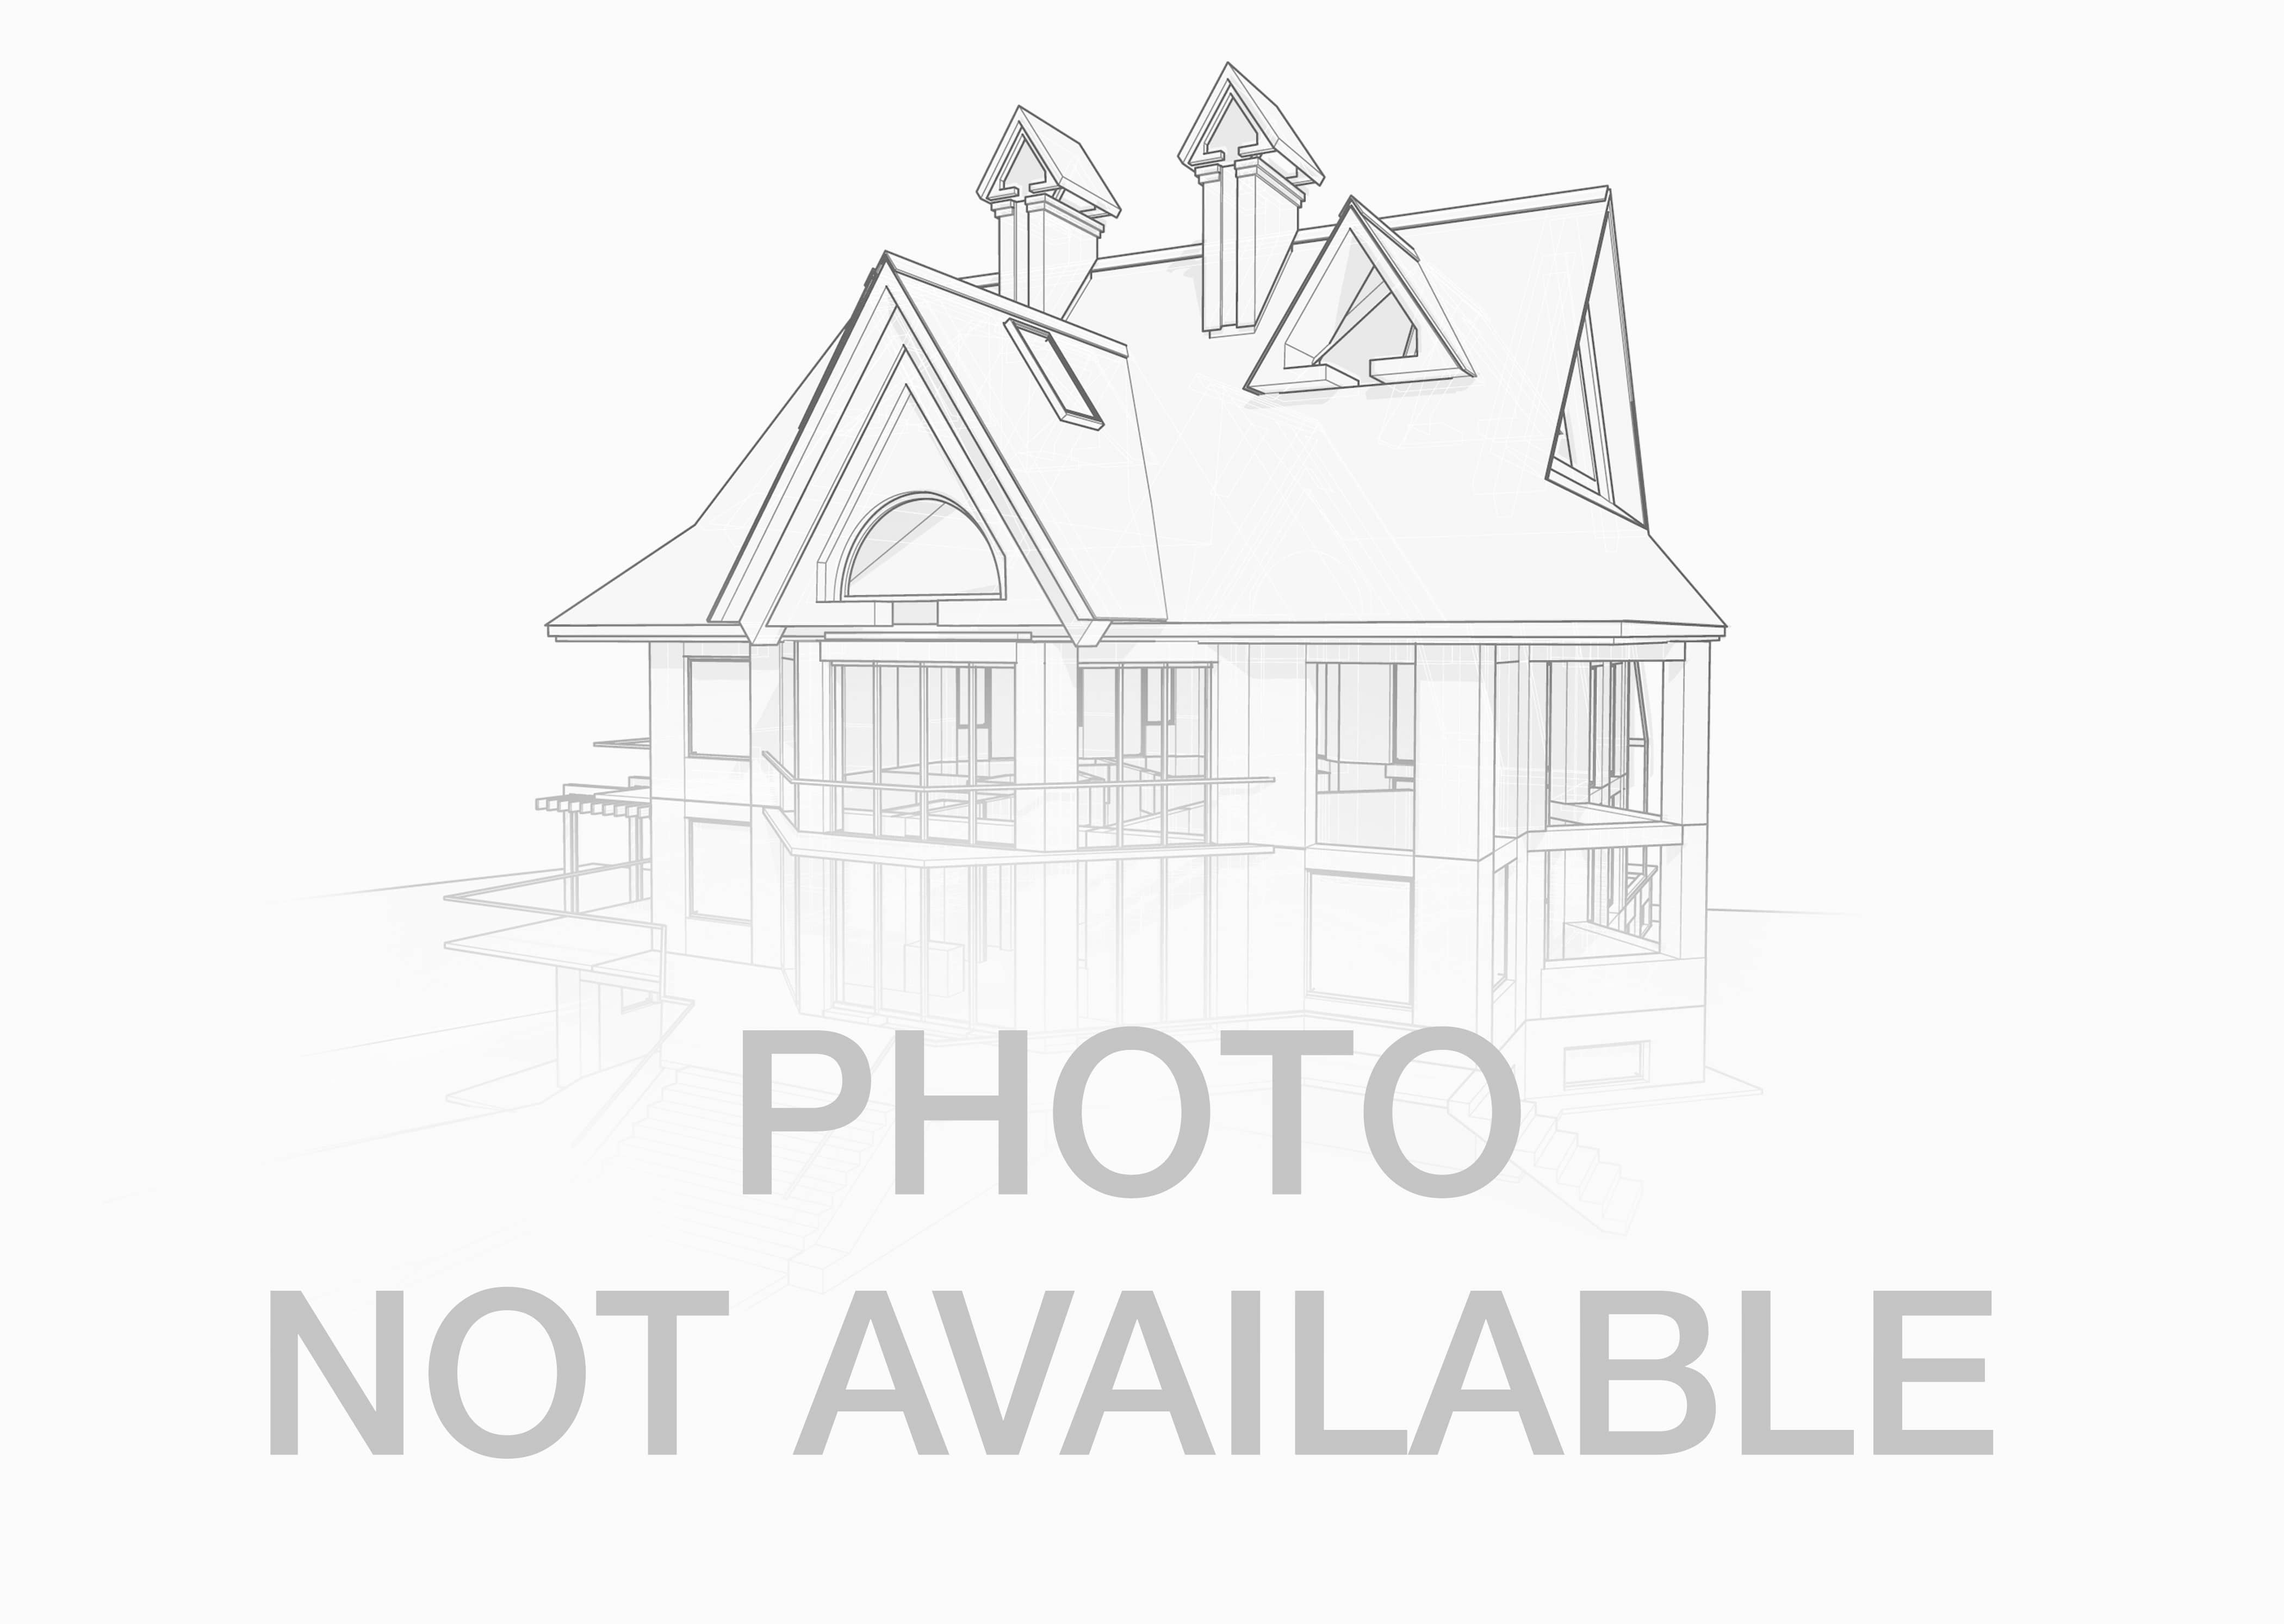 Summit Nj Homes For Sale And Real Estate